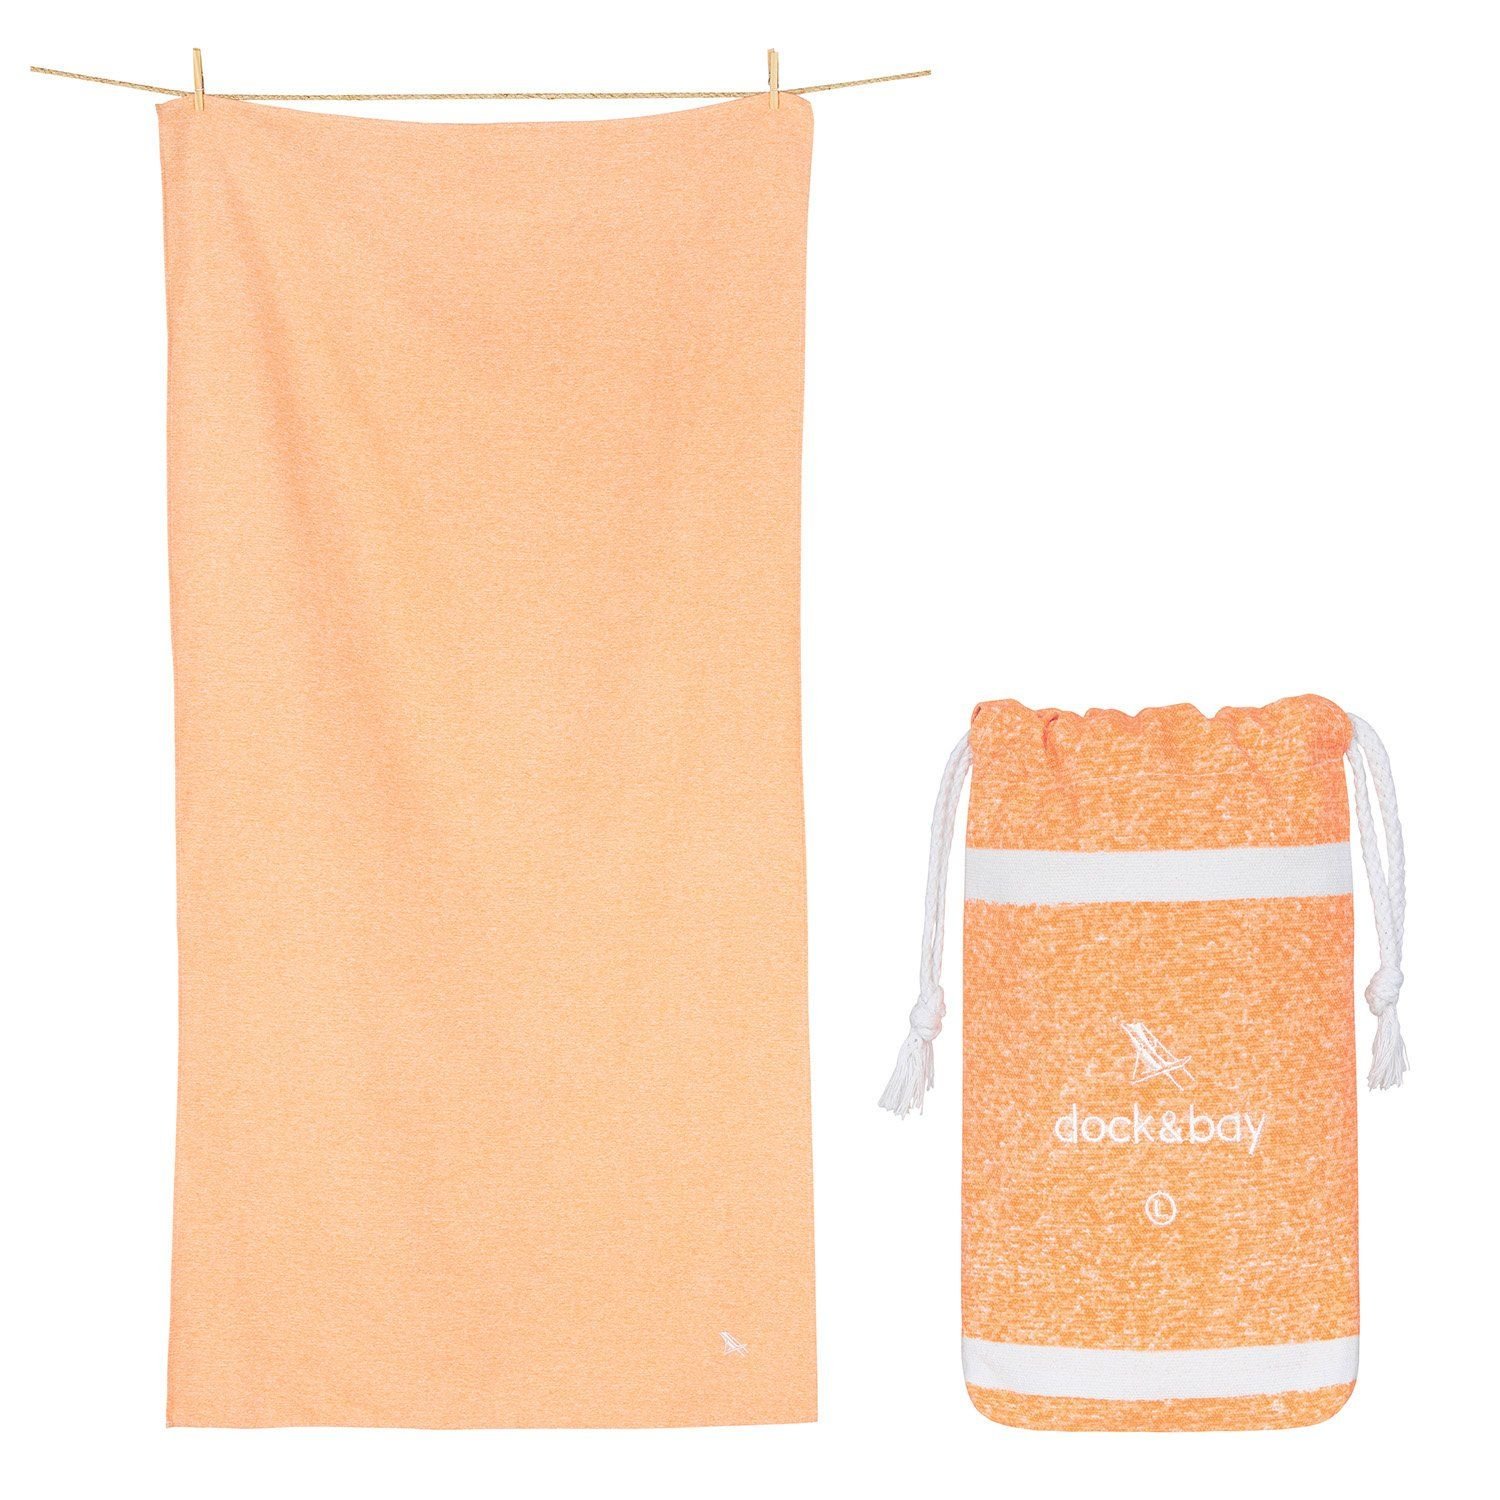 Yoga Towel from Dock & Bay